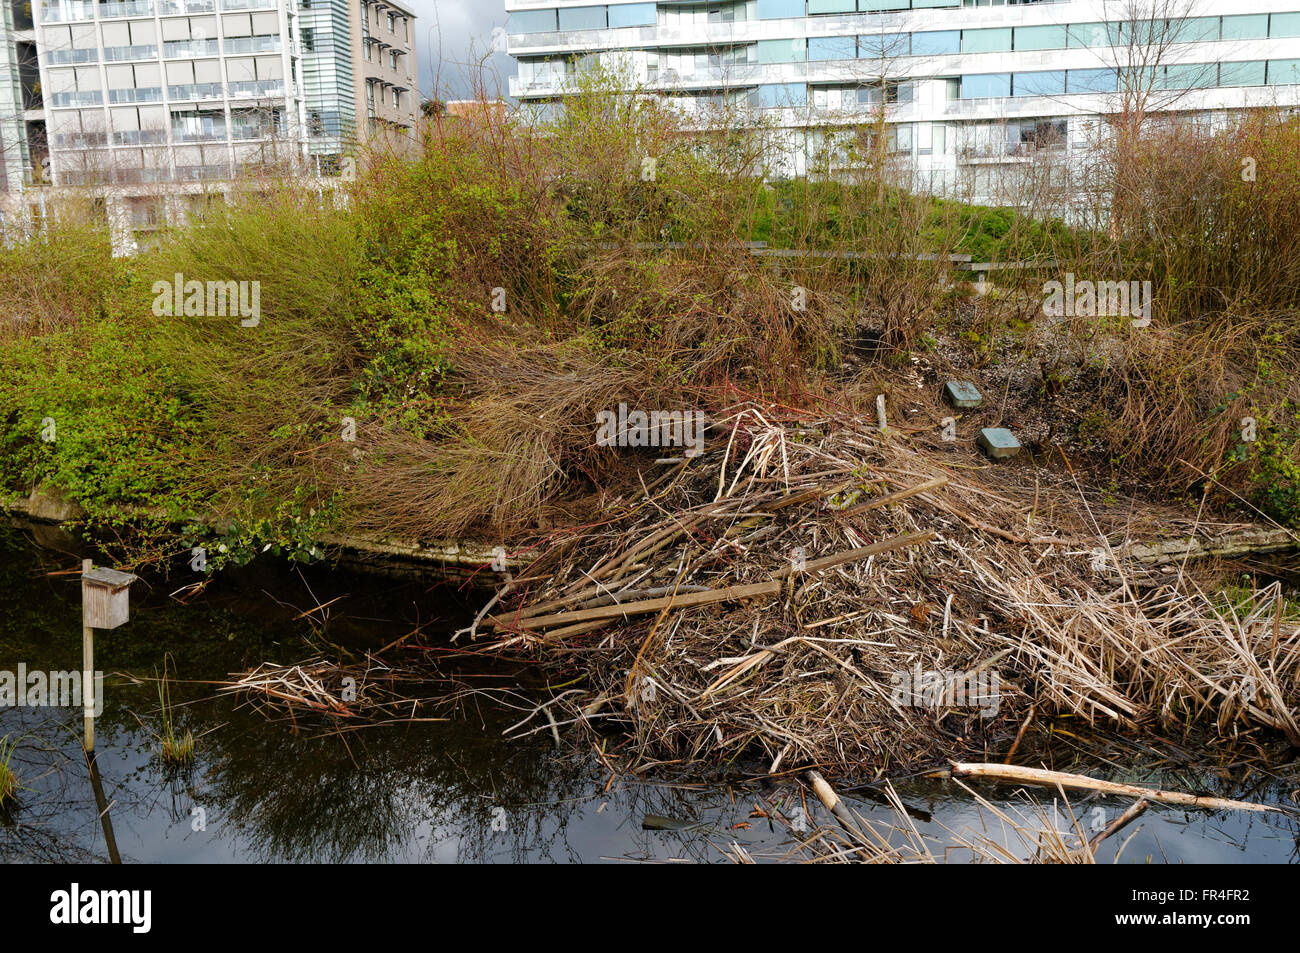 Beaver lodge and beaver dam in Hinge Park or Olympic Village park, Vancouver, British Columbia, Canada - Stock Image